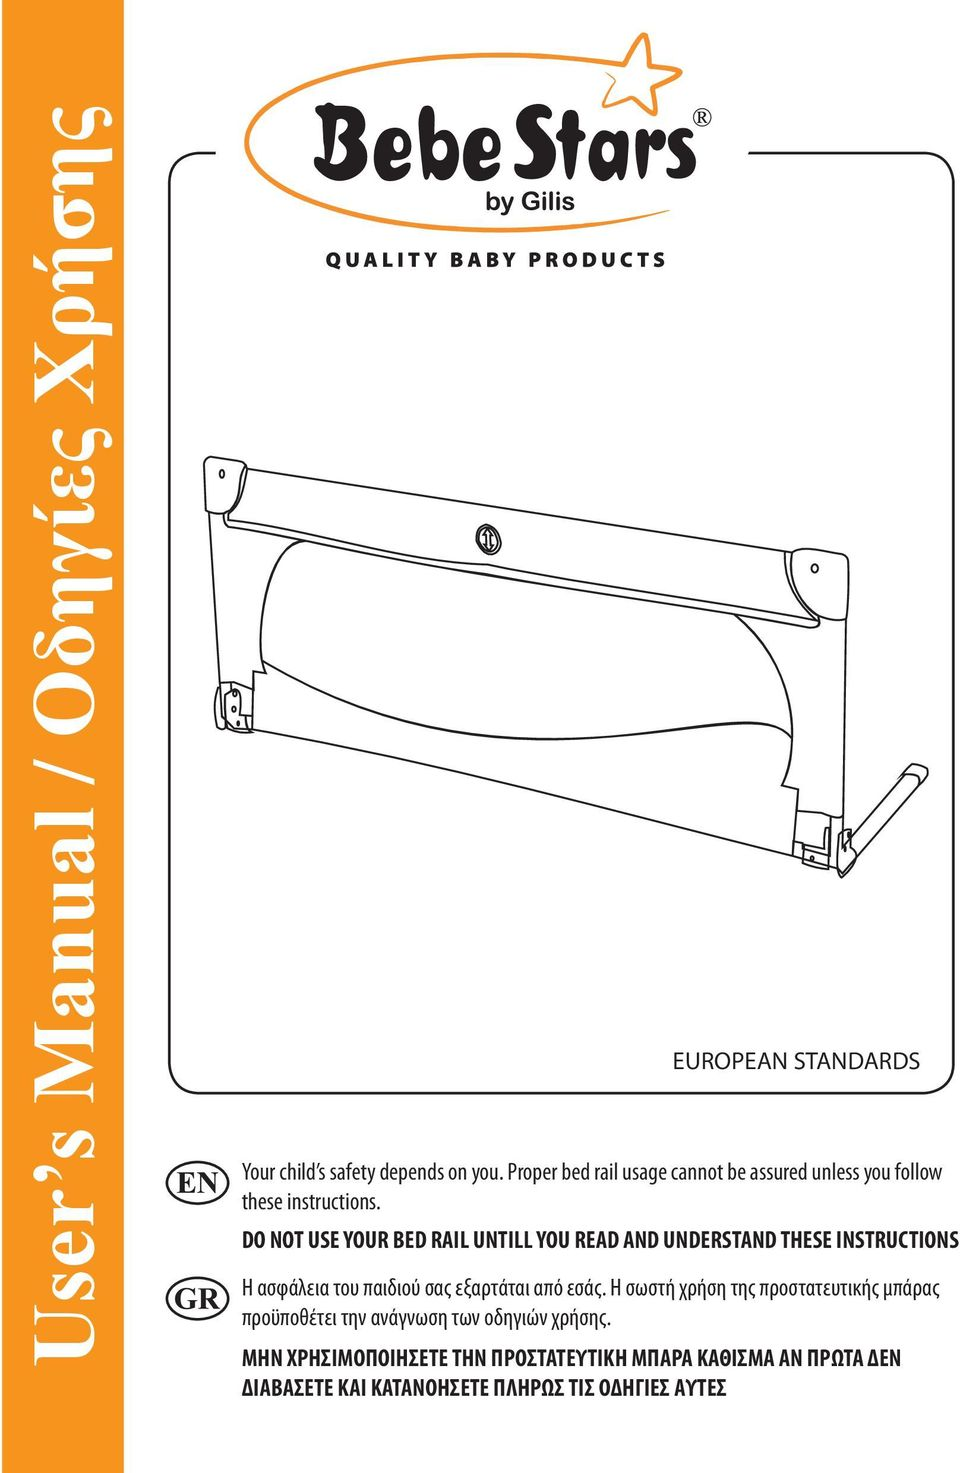 DO NOT USE YOUR BED RAIL UNTILL YOU READ AND UNDERSTAND THESE INSTRUCTIONS Η ασφάλεια του παιδιού σας εξαρτάται από εσάς.